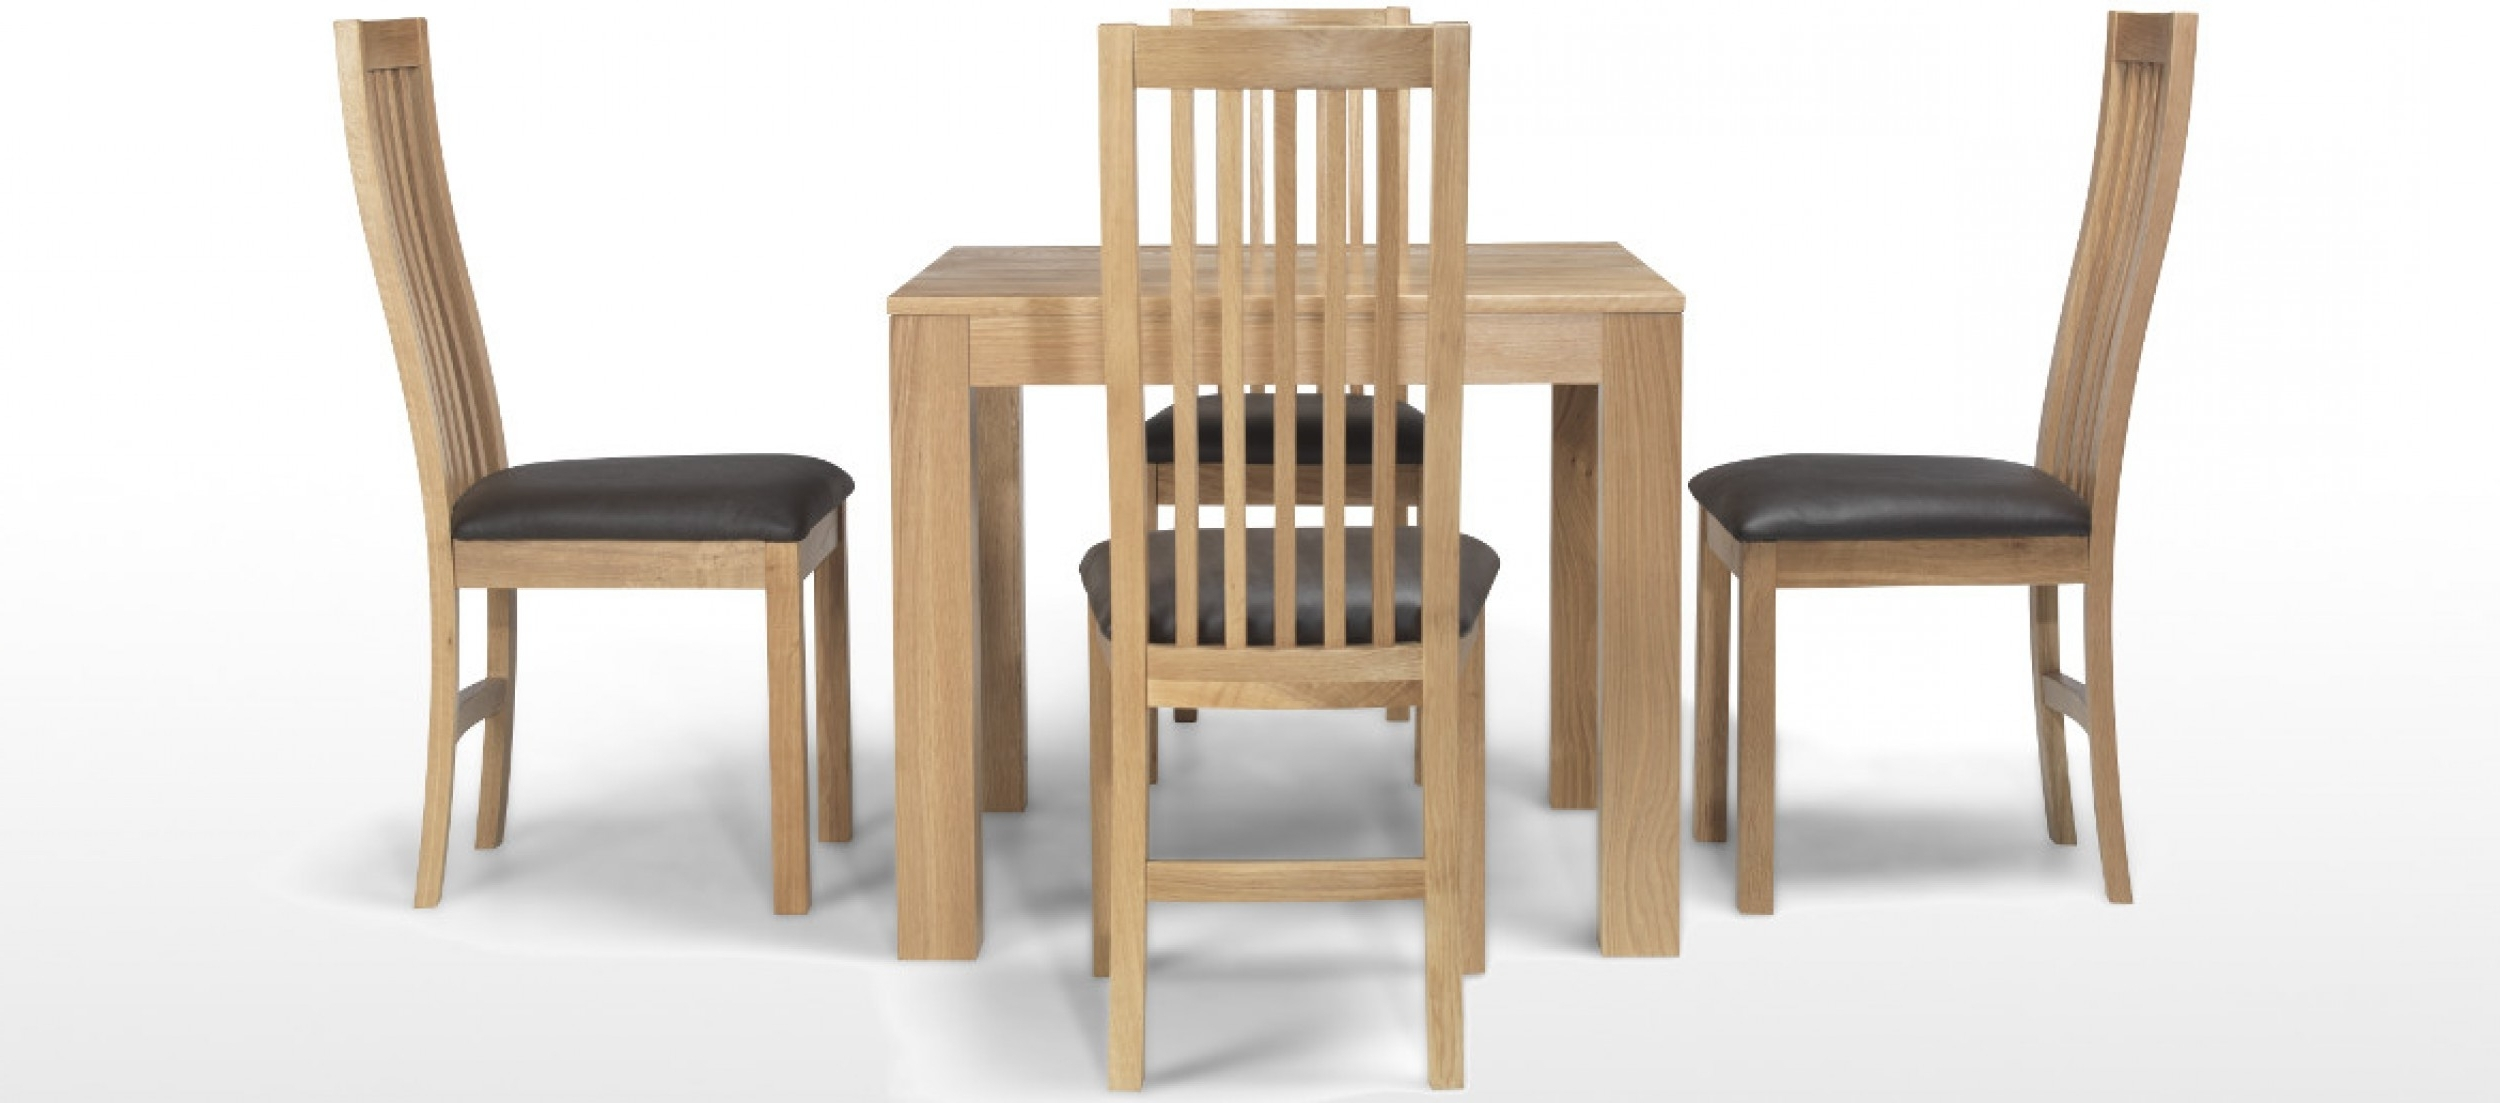 Best And Newest Extendable Dining Tables With 6 Chairs Inside Cube Oak 90 Cm Dining Table And 4 Chairs (View 15 of 25)